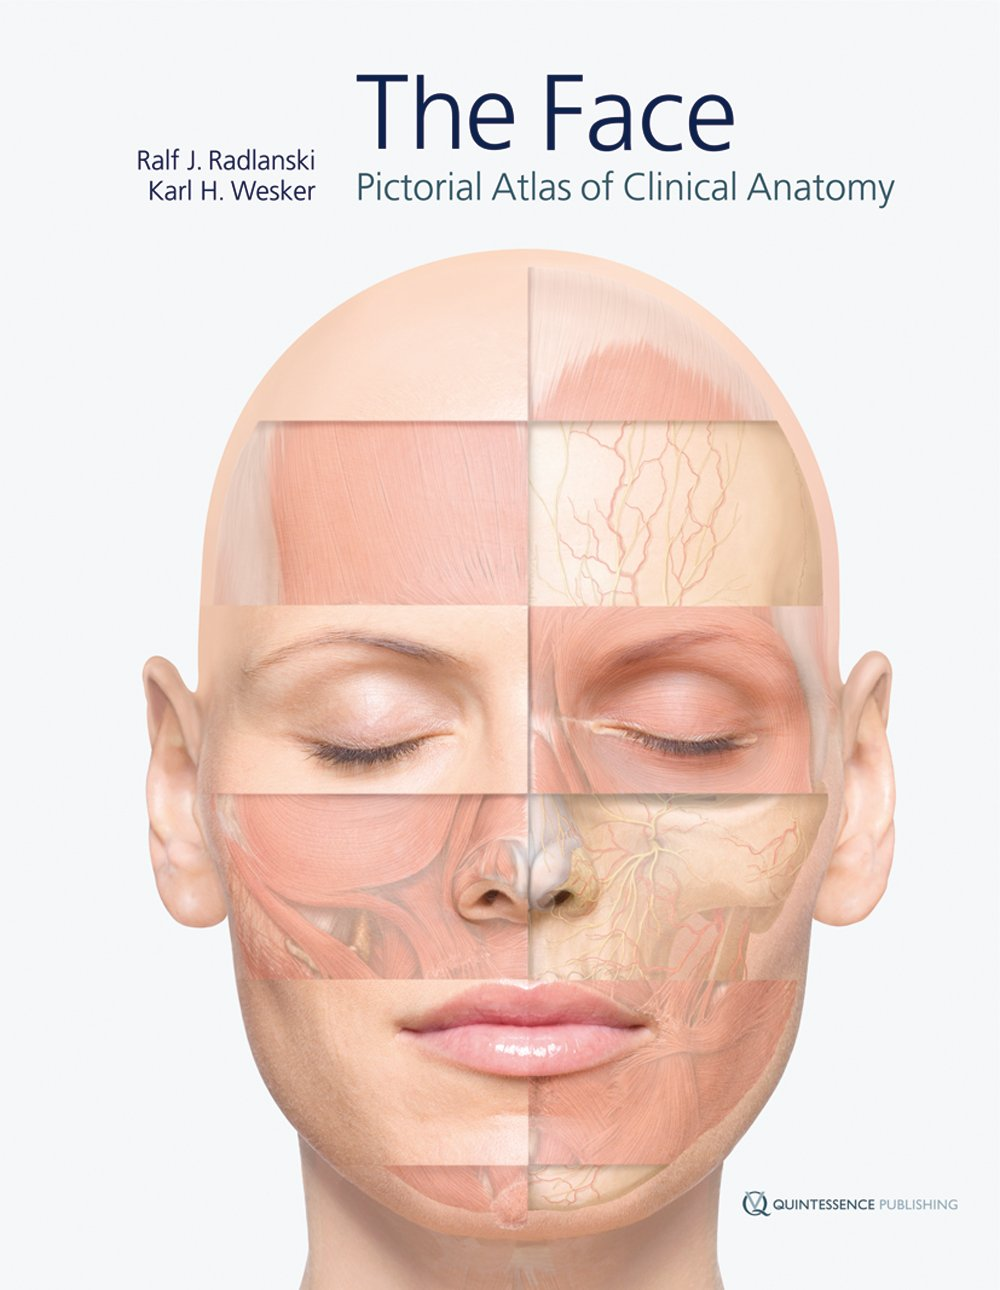 The Face: Pictorial Atlas of Clinical Anatomy: Amazon.co.uk: Ralf J ...